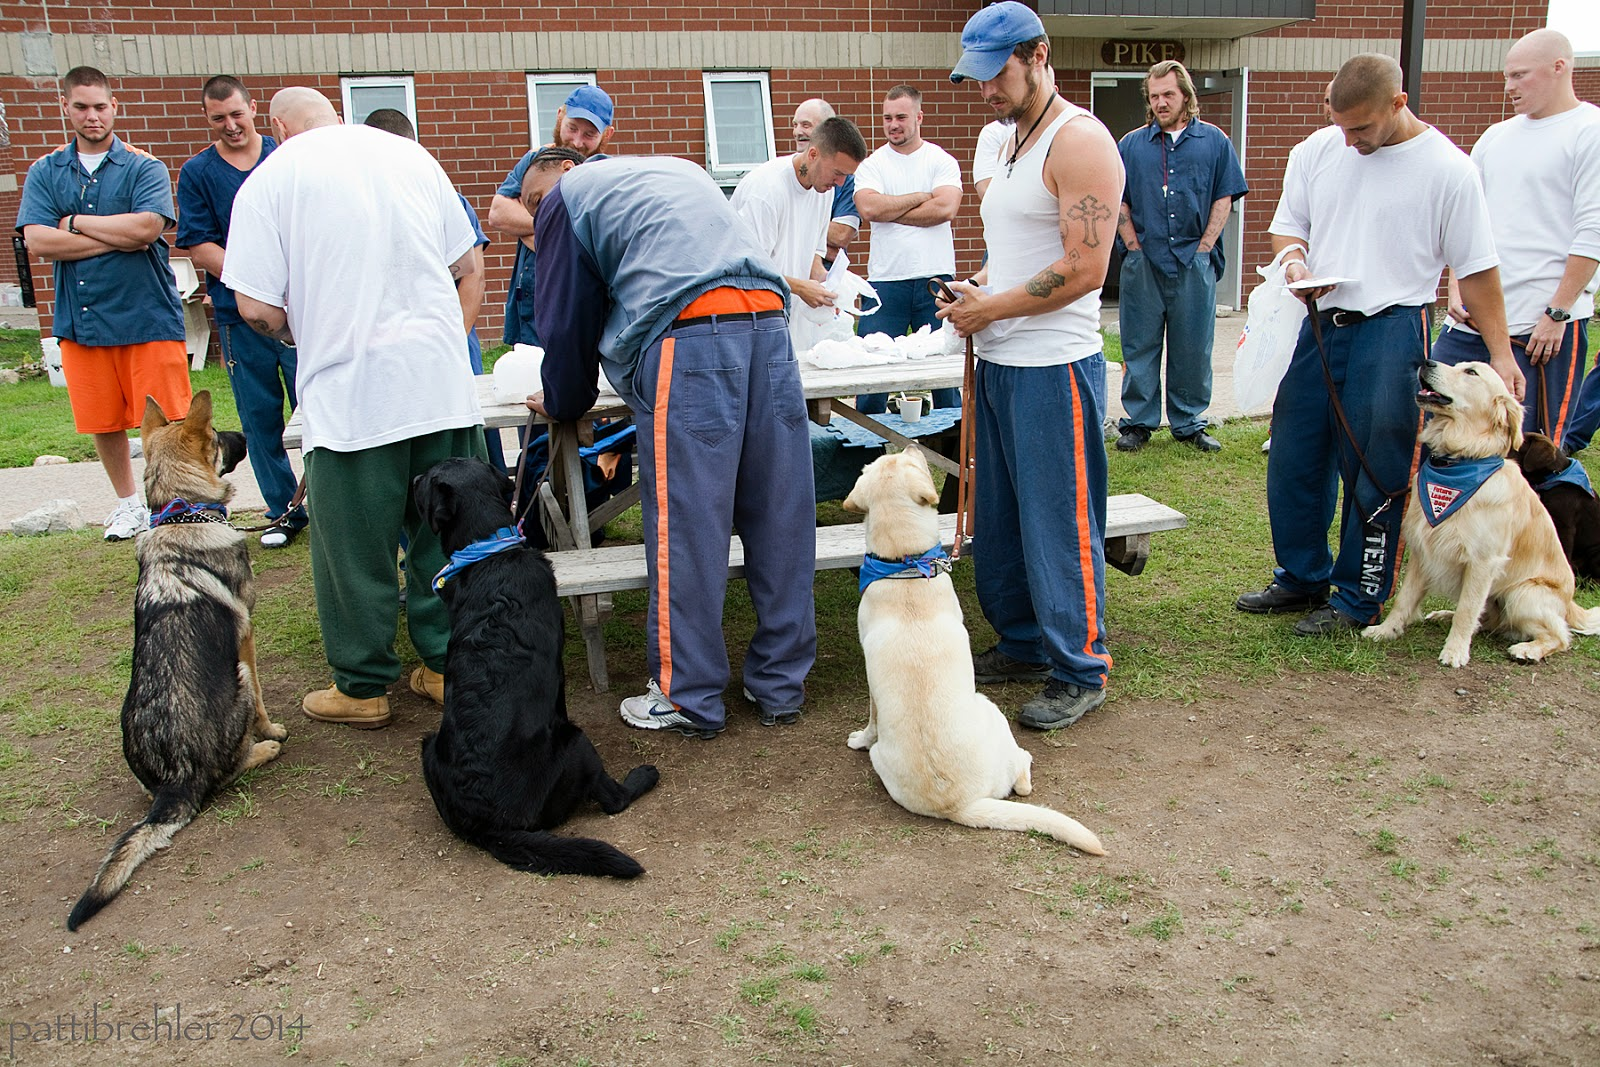 There are a group of inmates standing in line next to a wood picnic table, with their puppies sitting nearby. From left to right is a German Shepherd, a black lab, a yellow lab, a golden retriever and a chocolate lab. There are other men standing in the background looking on. They are outside in the prison yard and the brick wall of the unit is behind them.